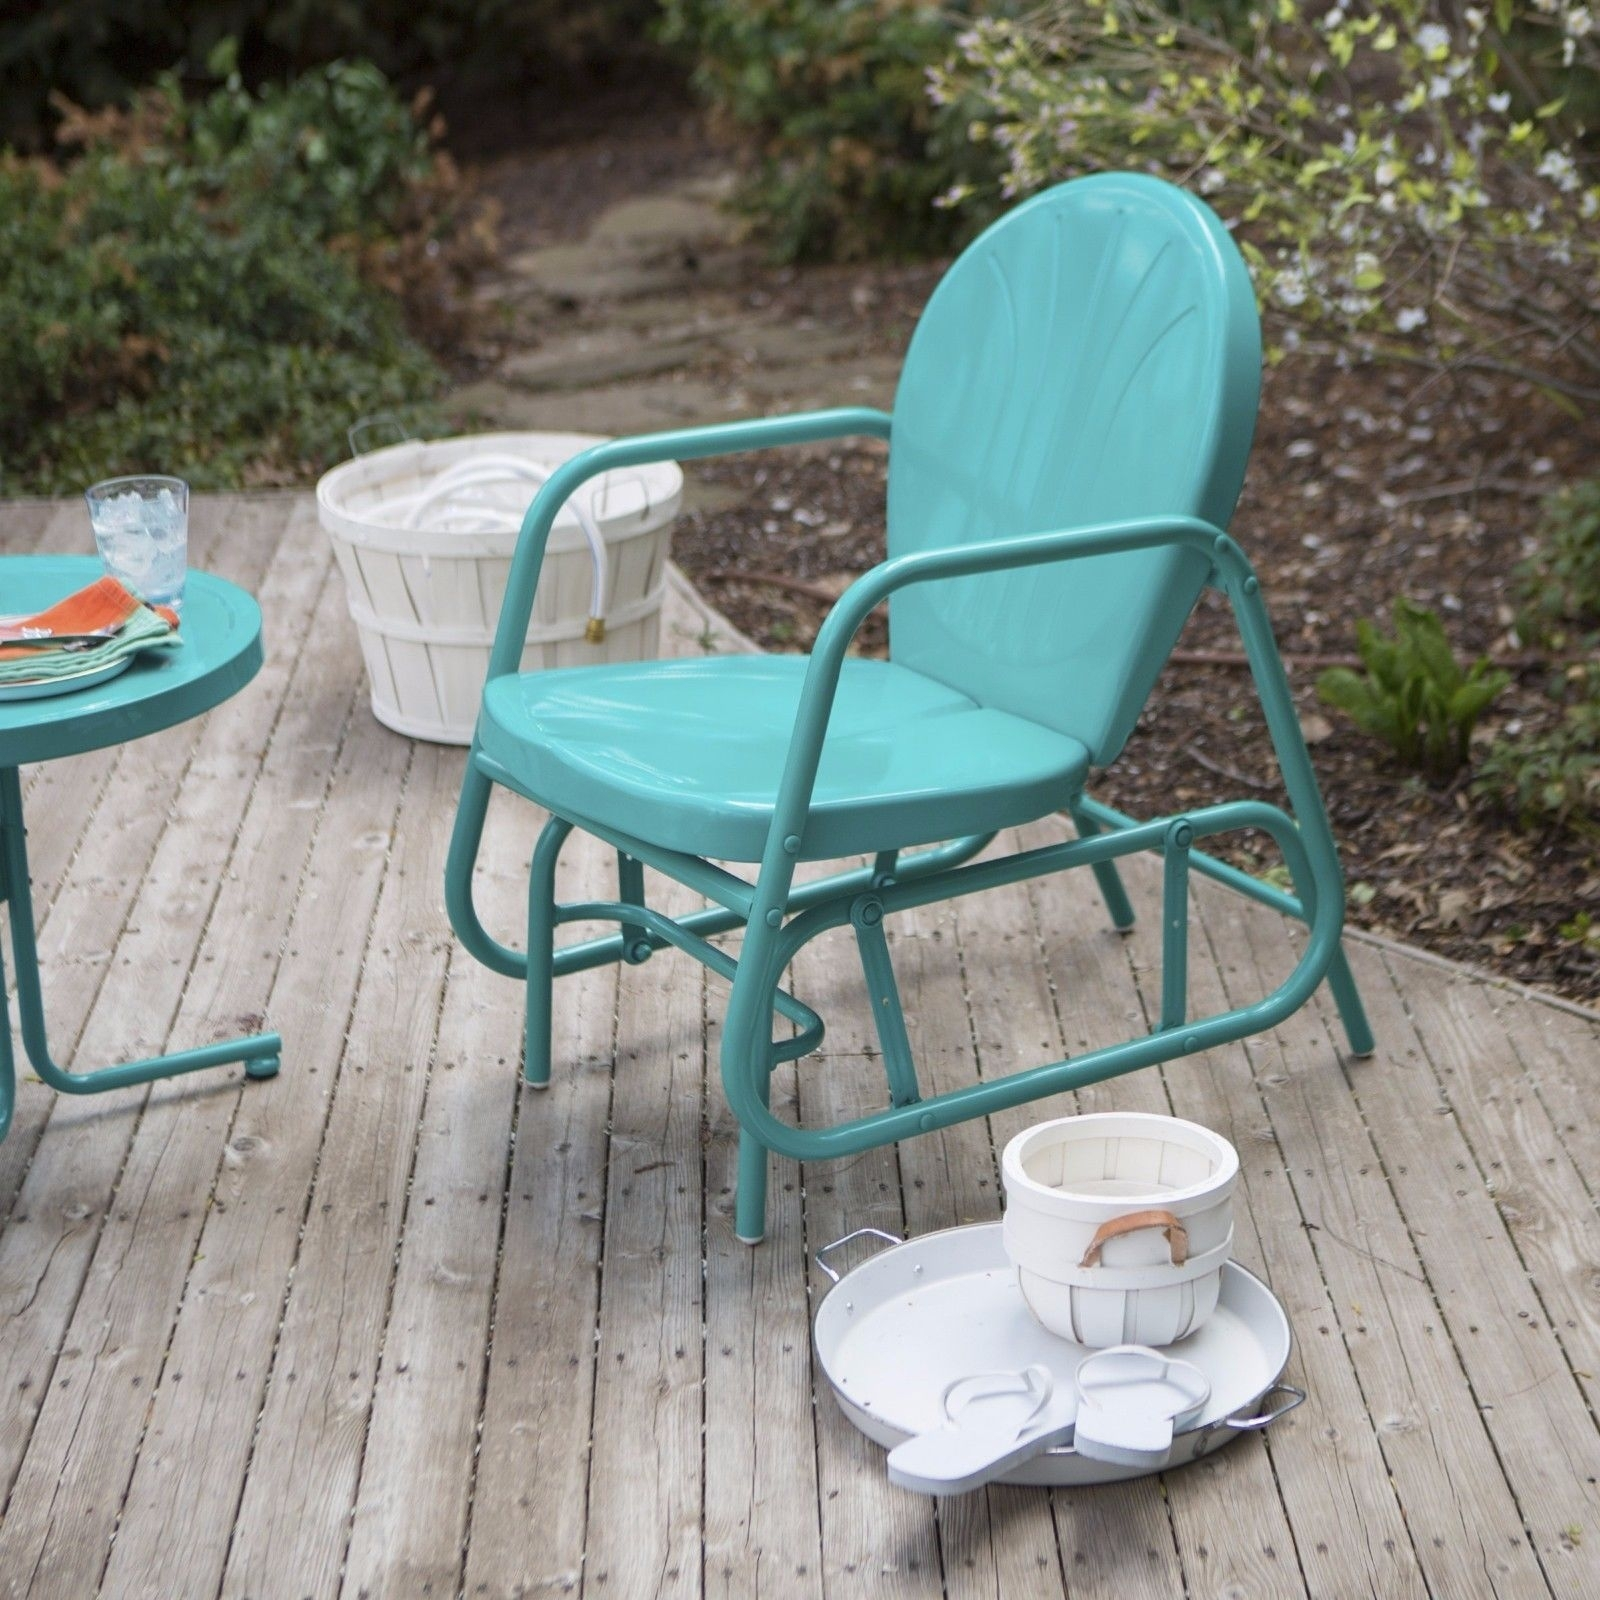 Backyard Garden Vintage – Champsbahrain Pertaining To Vintage Outdoor Rocking Chairs (View 15 of 15)